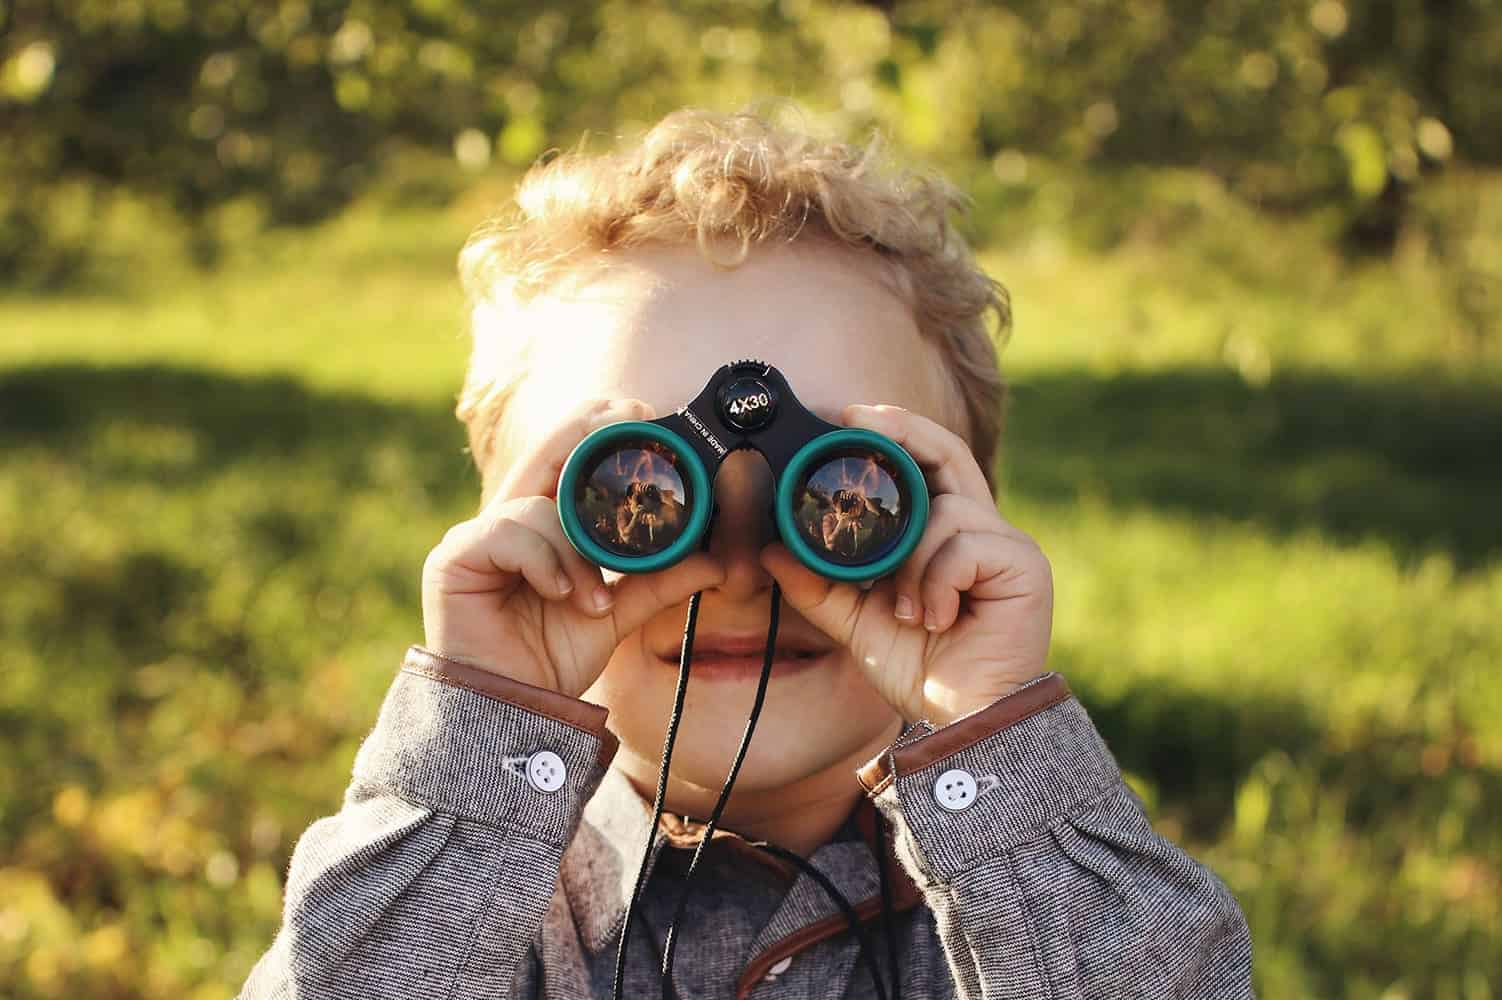 Boy with green binoculars